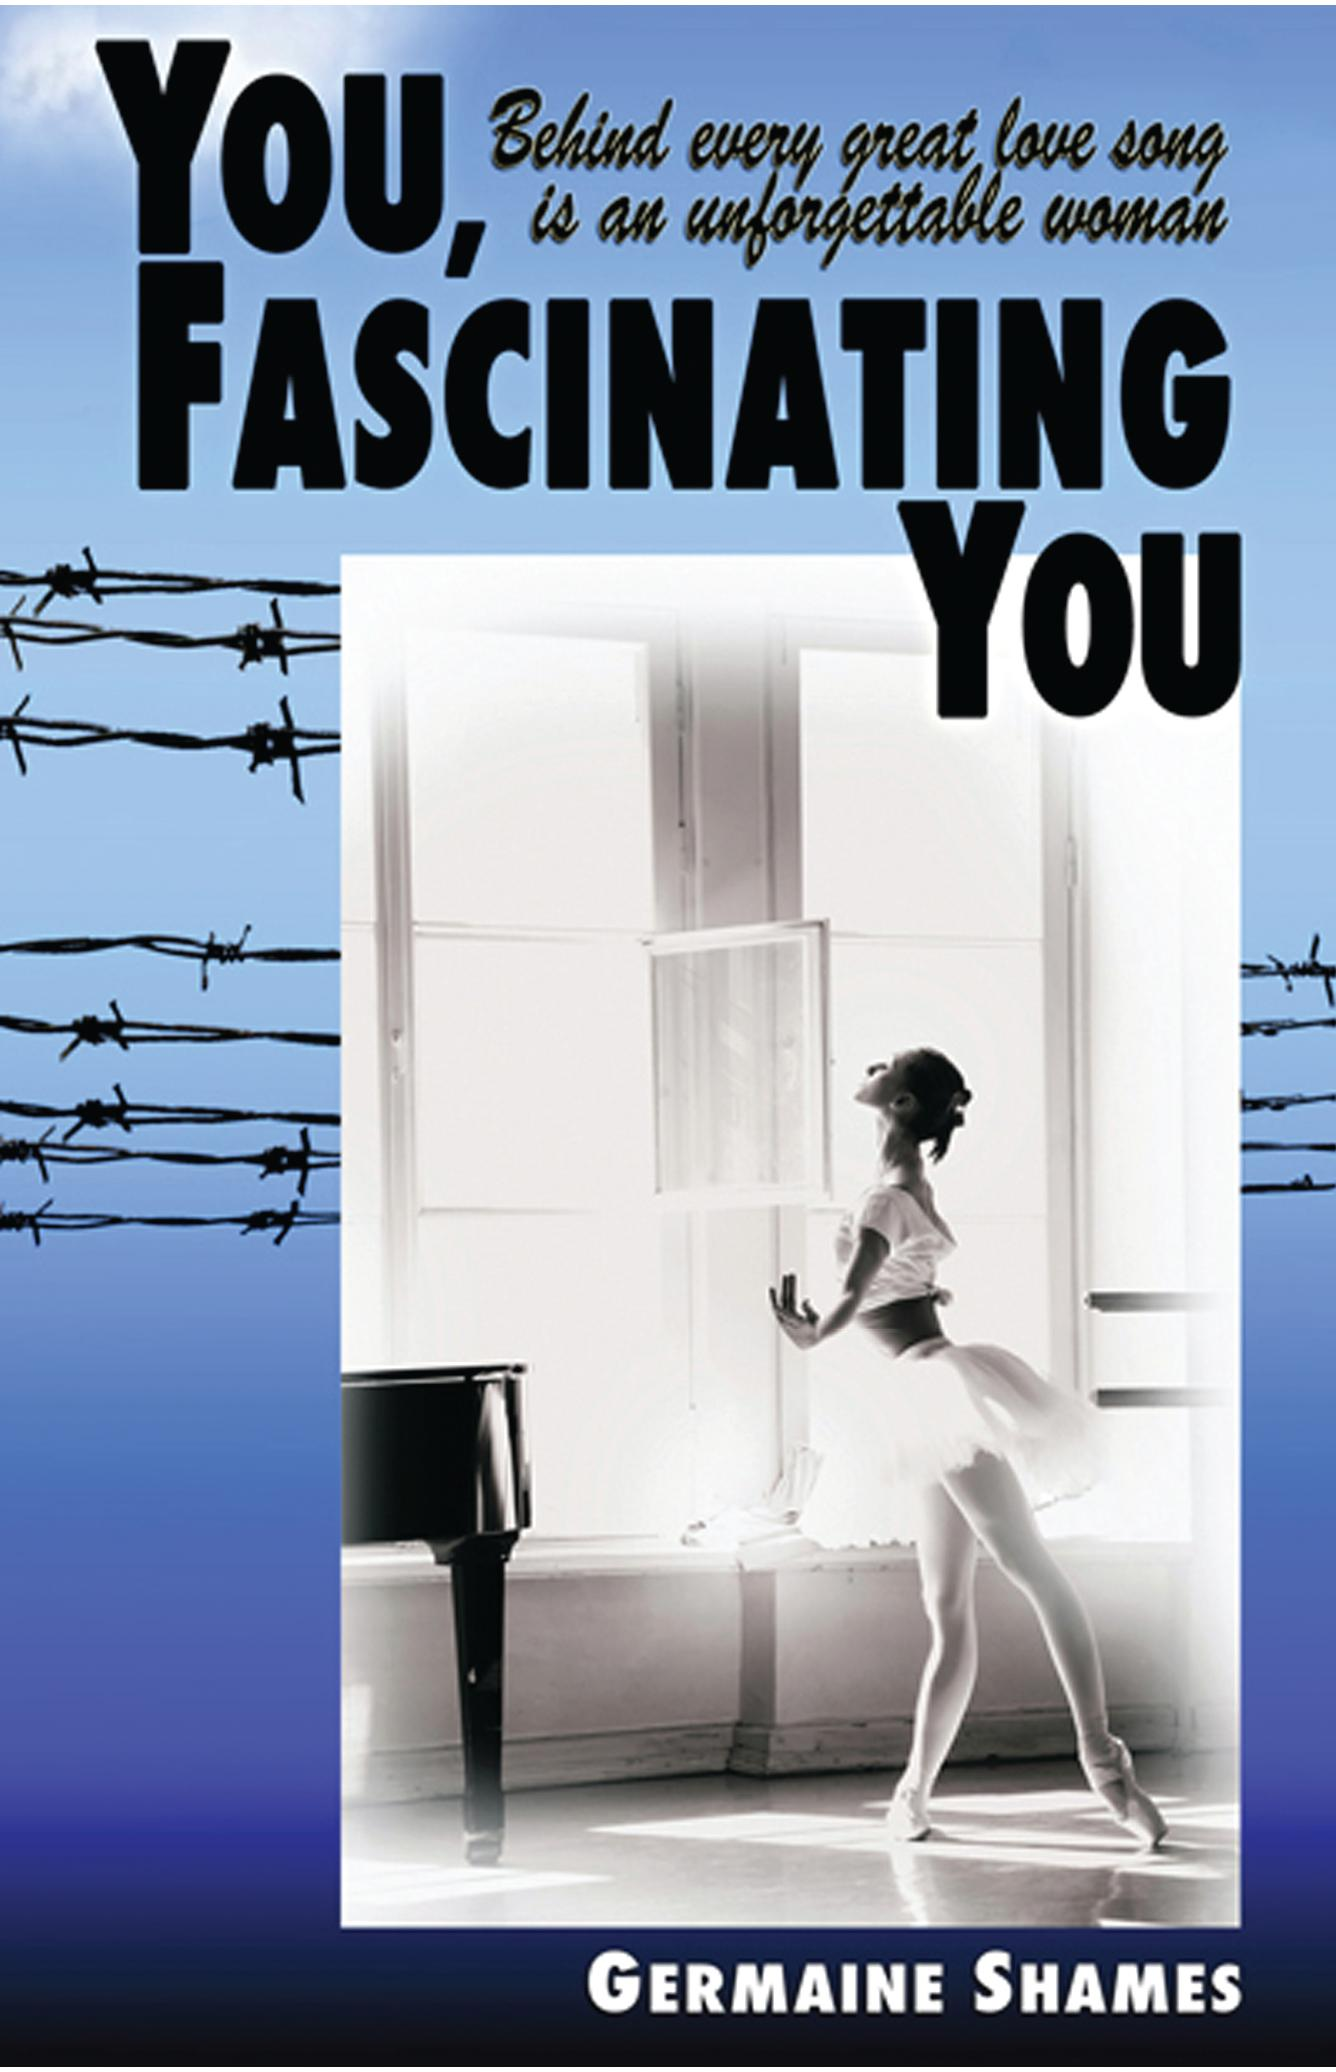 You, Fascinating You by Germaine Shames